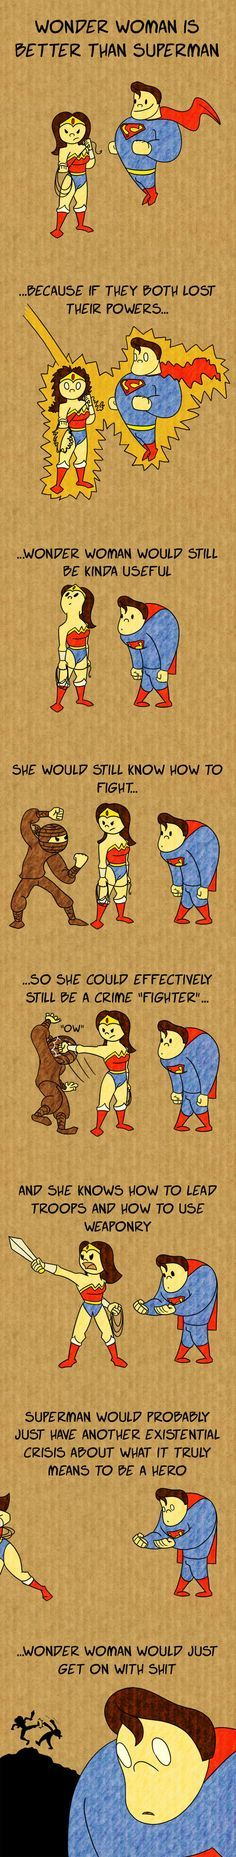 Wonder Woman is better than Super Man by ~spaced-brain on deviantART. Sorry, @Damon Ridgway Ridgway Ridgway Williams